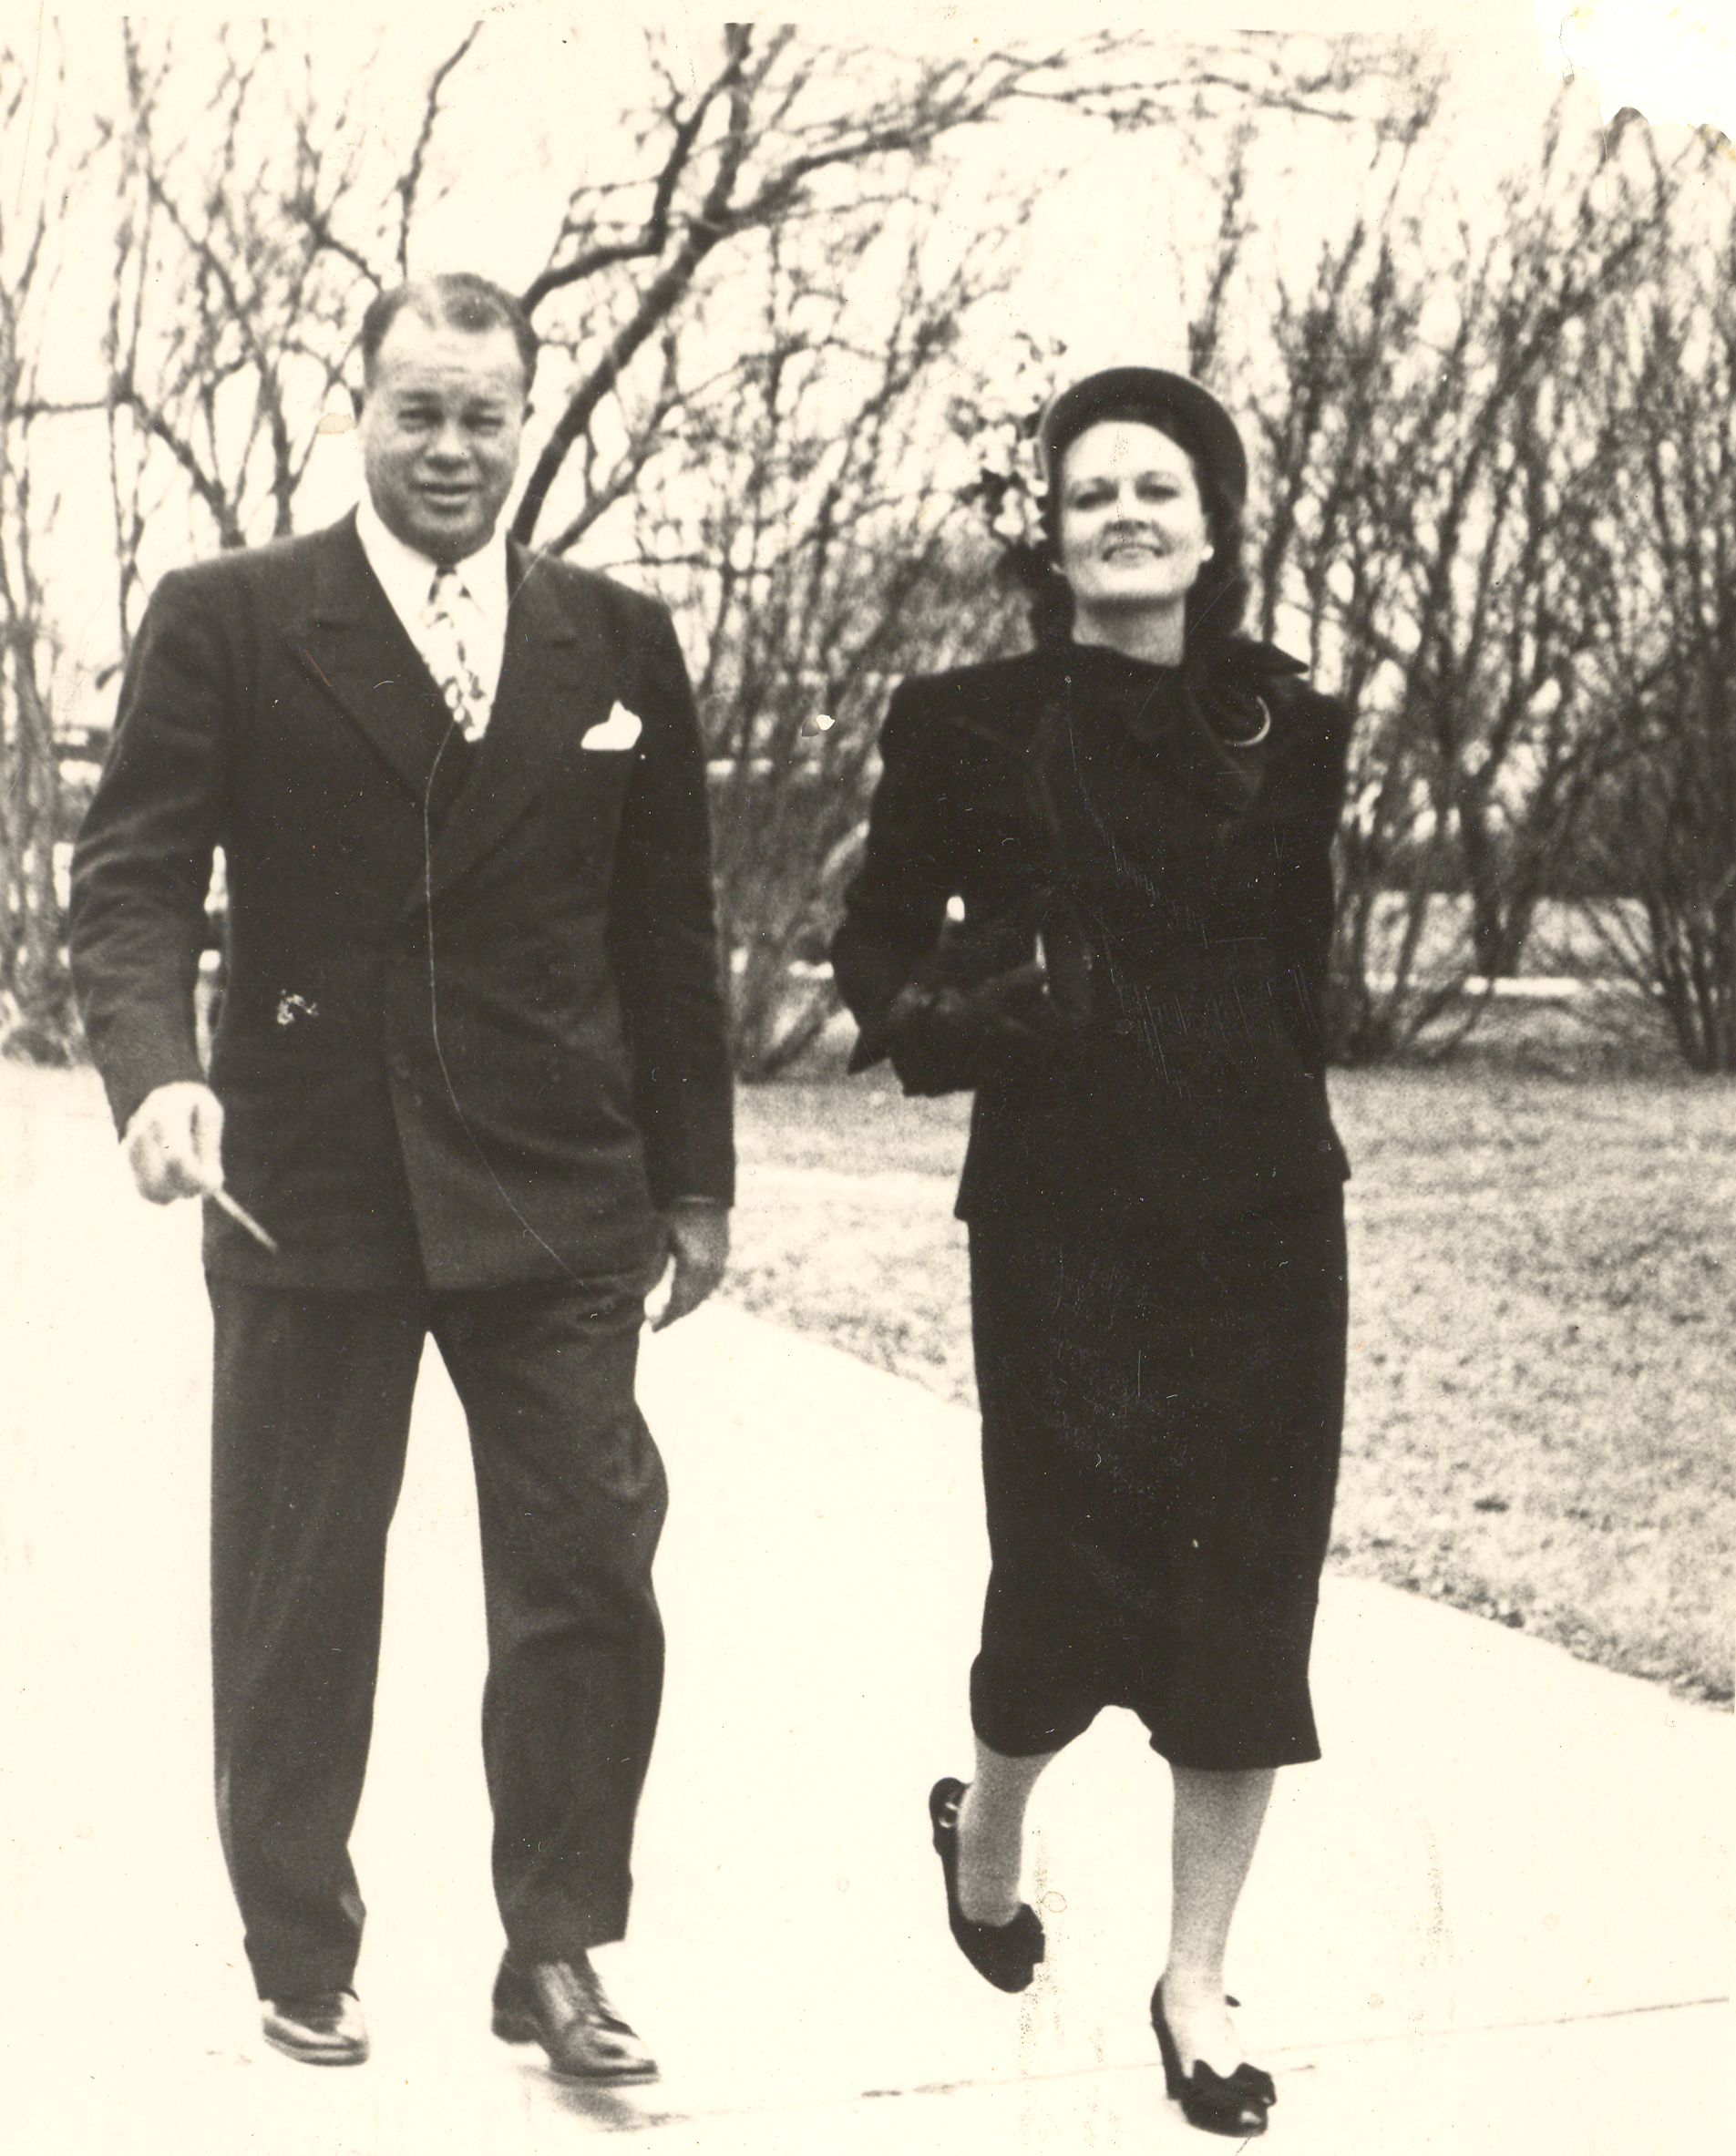 William Reilly Nail, Sr. (1903-1958) and wife Wyldon Burgess Nail (1907-1986) in Fort Worth, ca 1950s